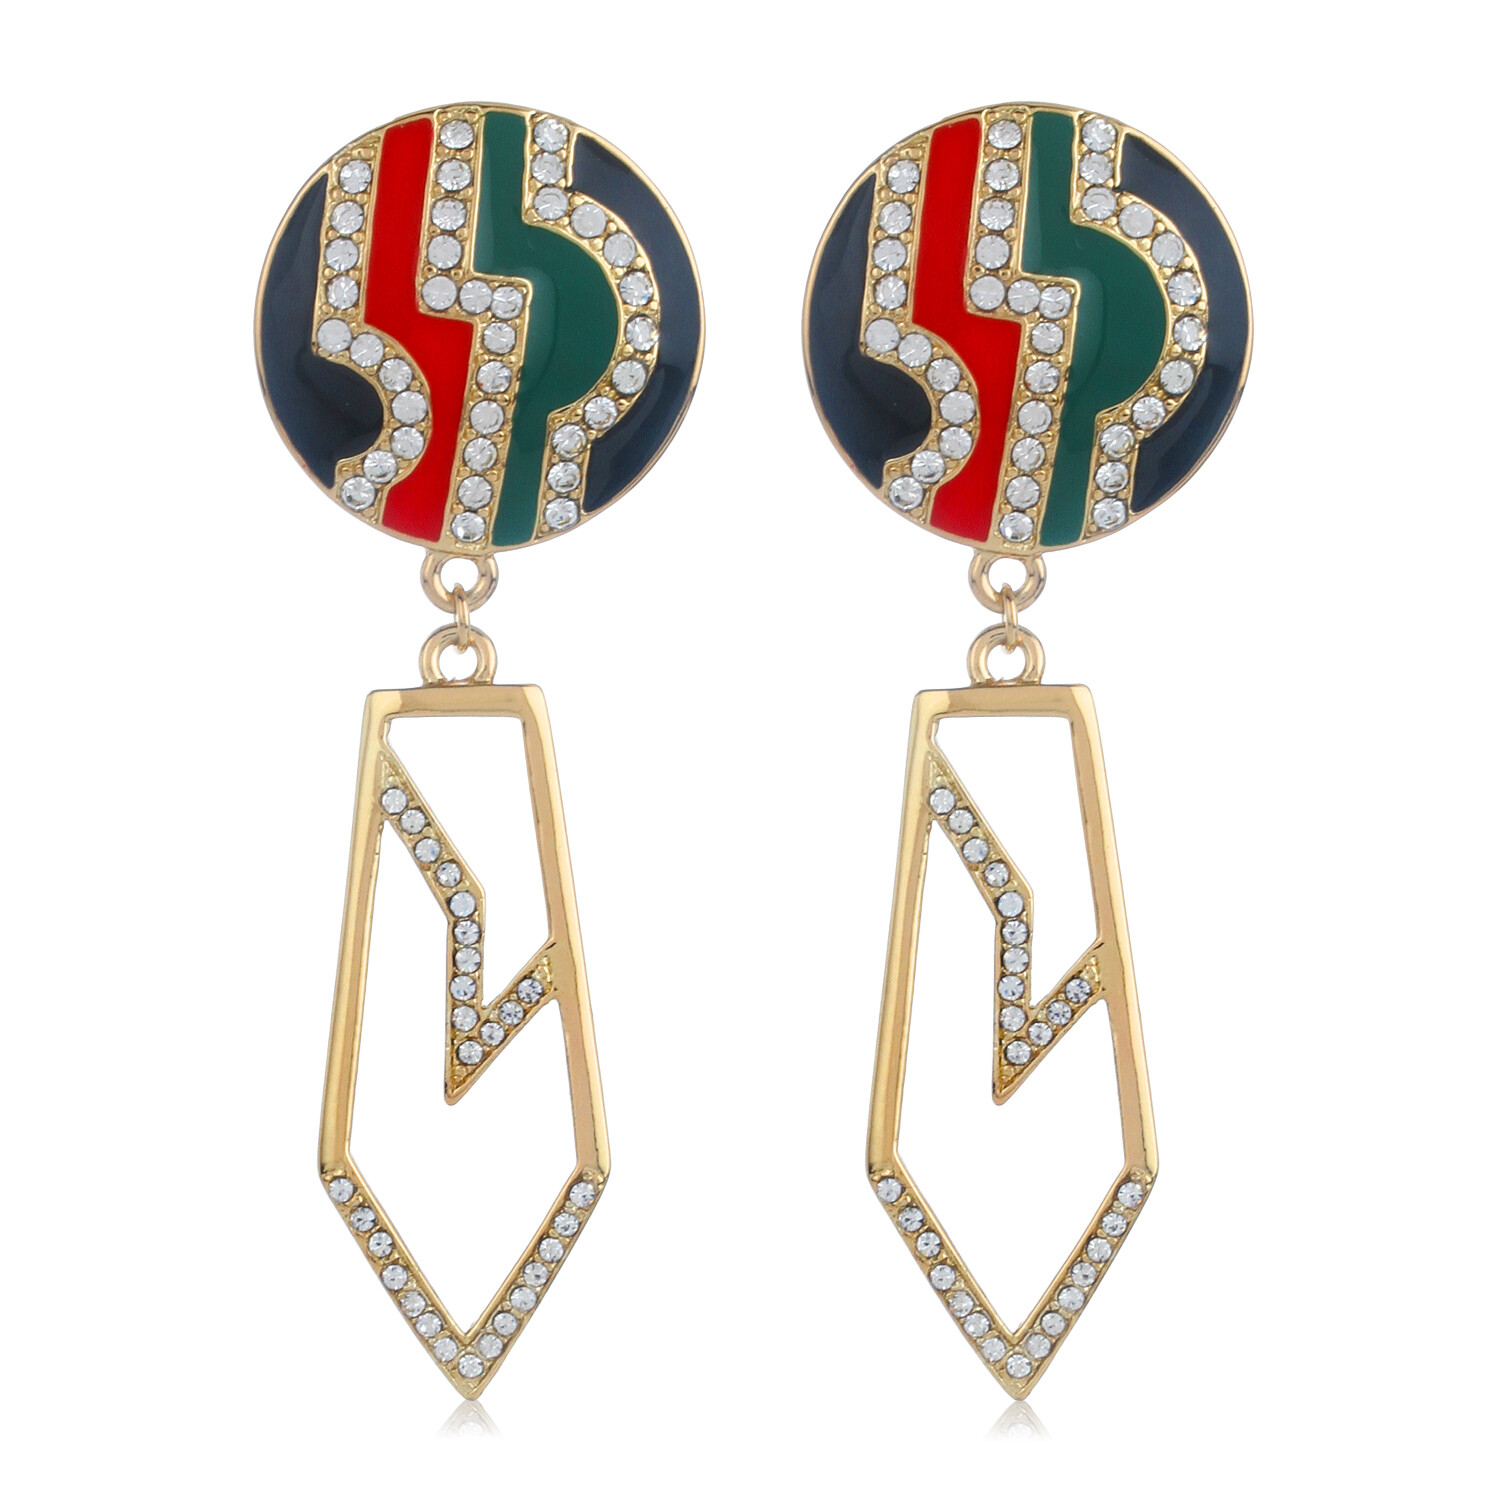 Estele Deco Light Earrings